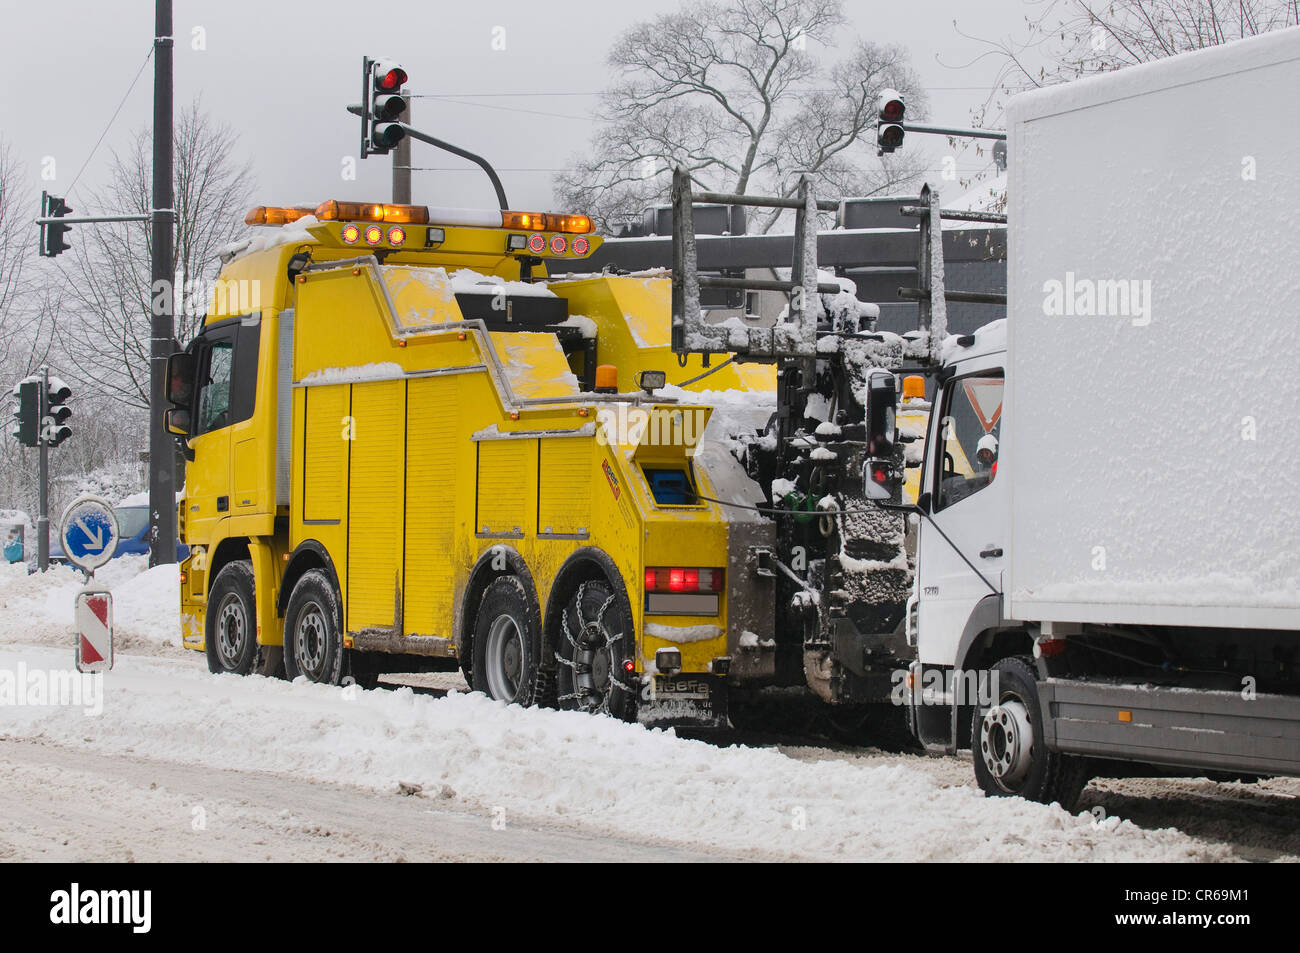 Winter, truck being towed by a large tow truck on a snowy road - Stock Image